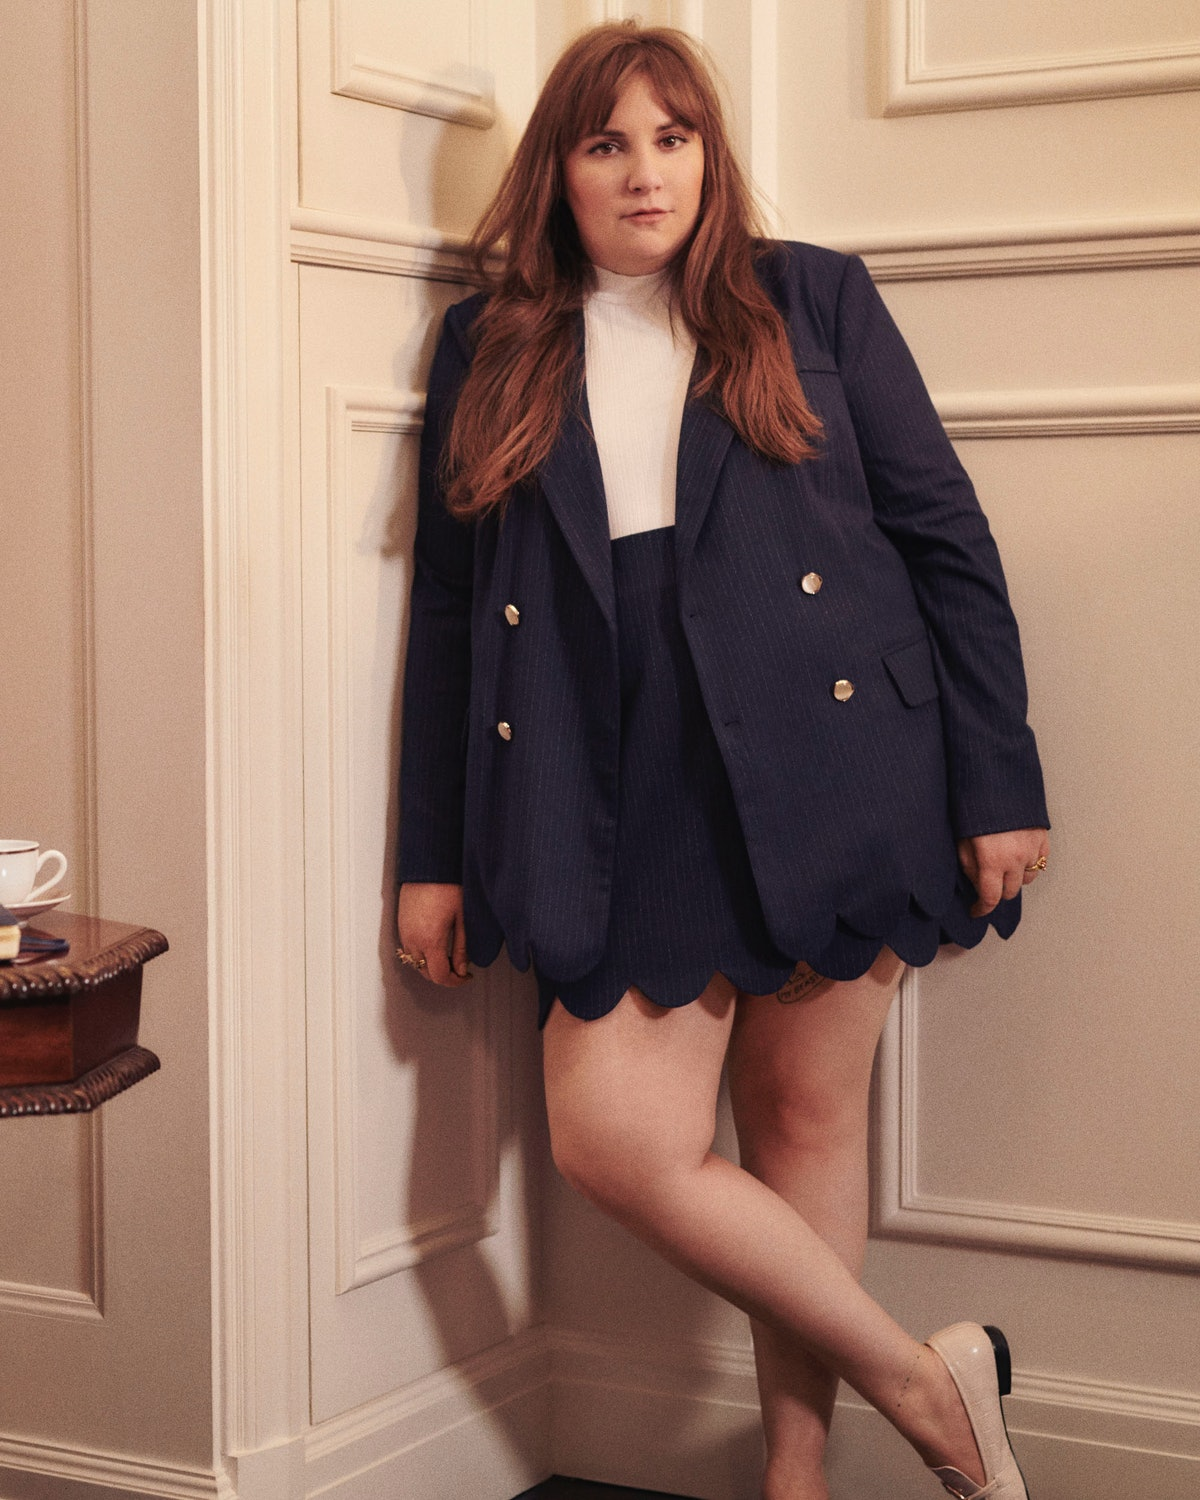 Lena Dunham wears a matching jacket and skirt set from her clothing line collaboration with plus-siz...